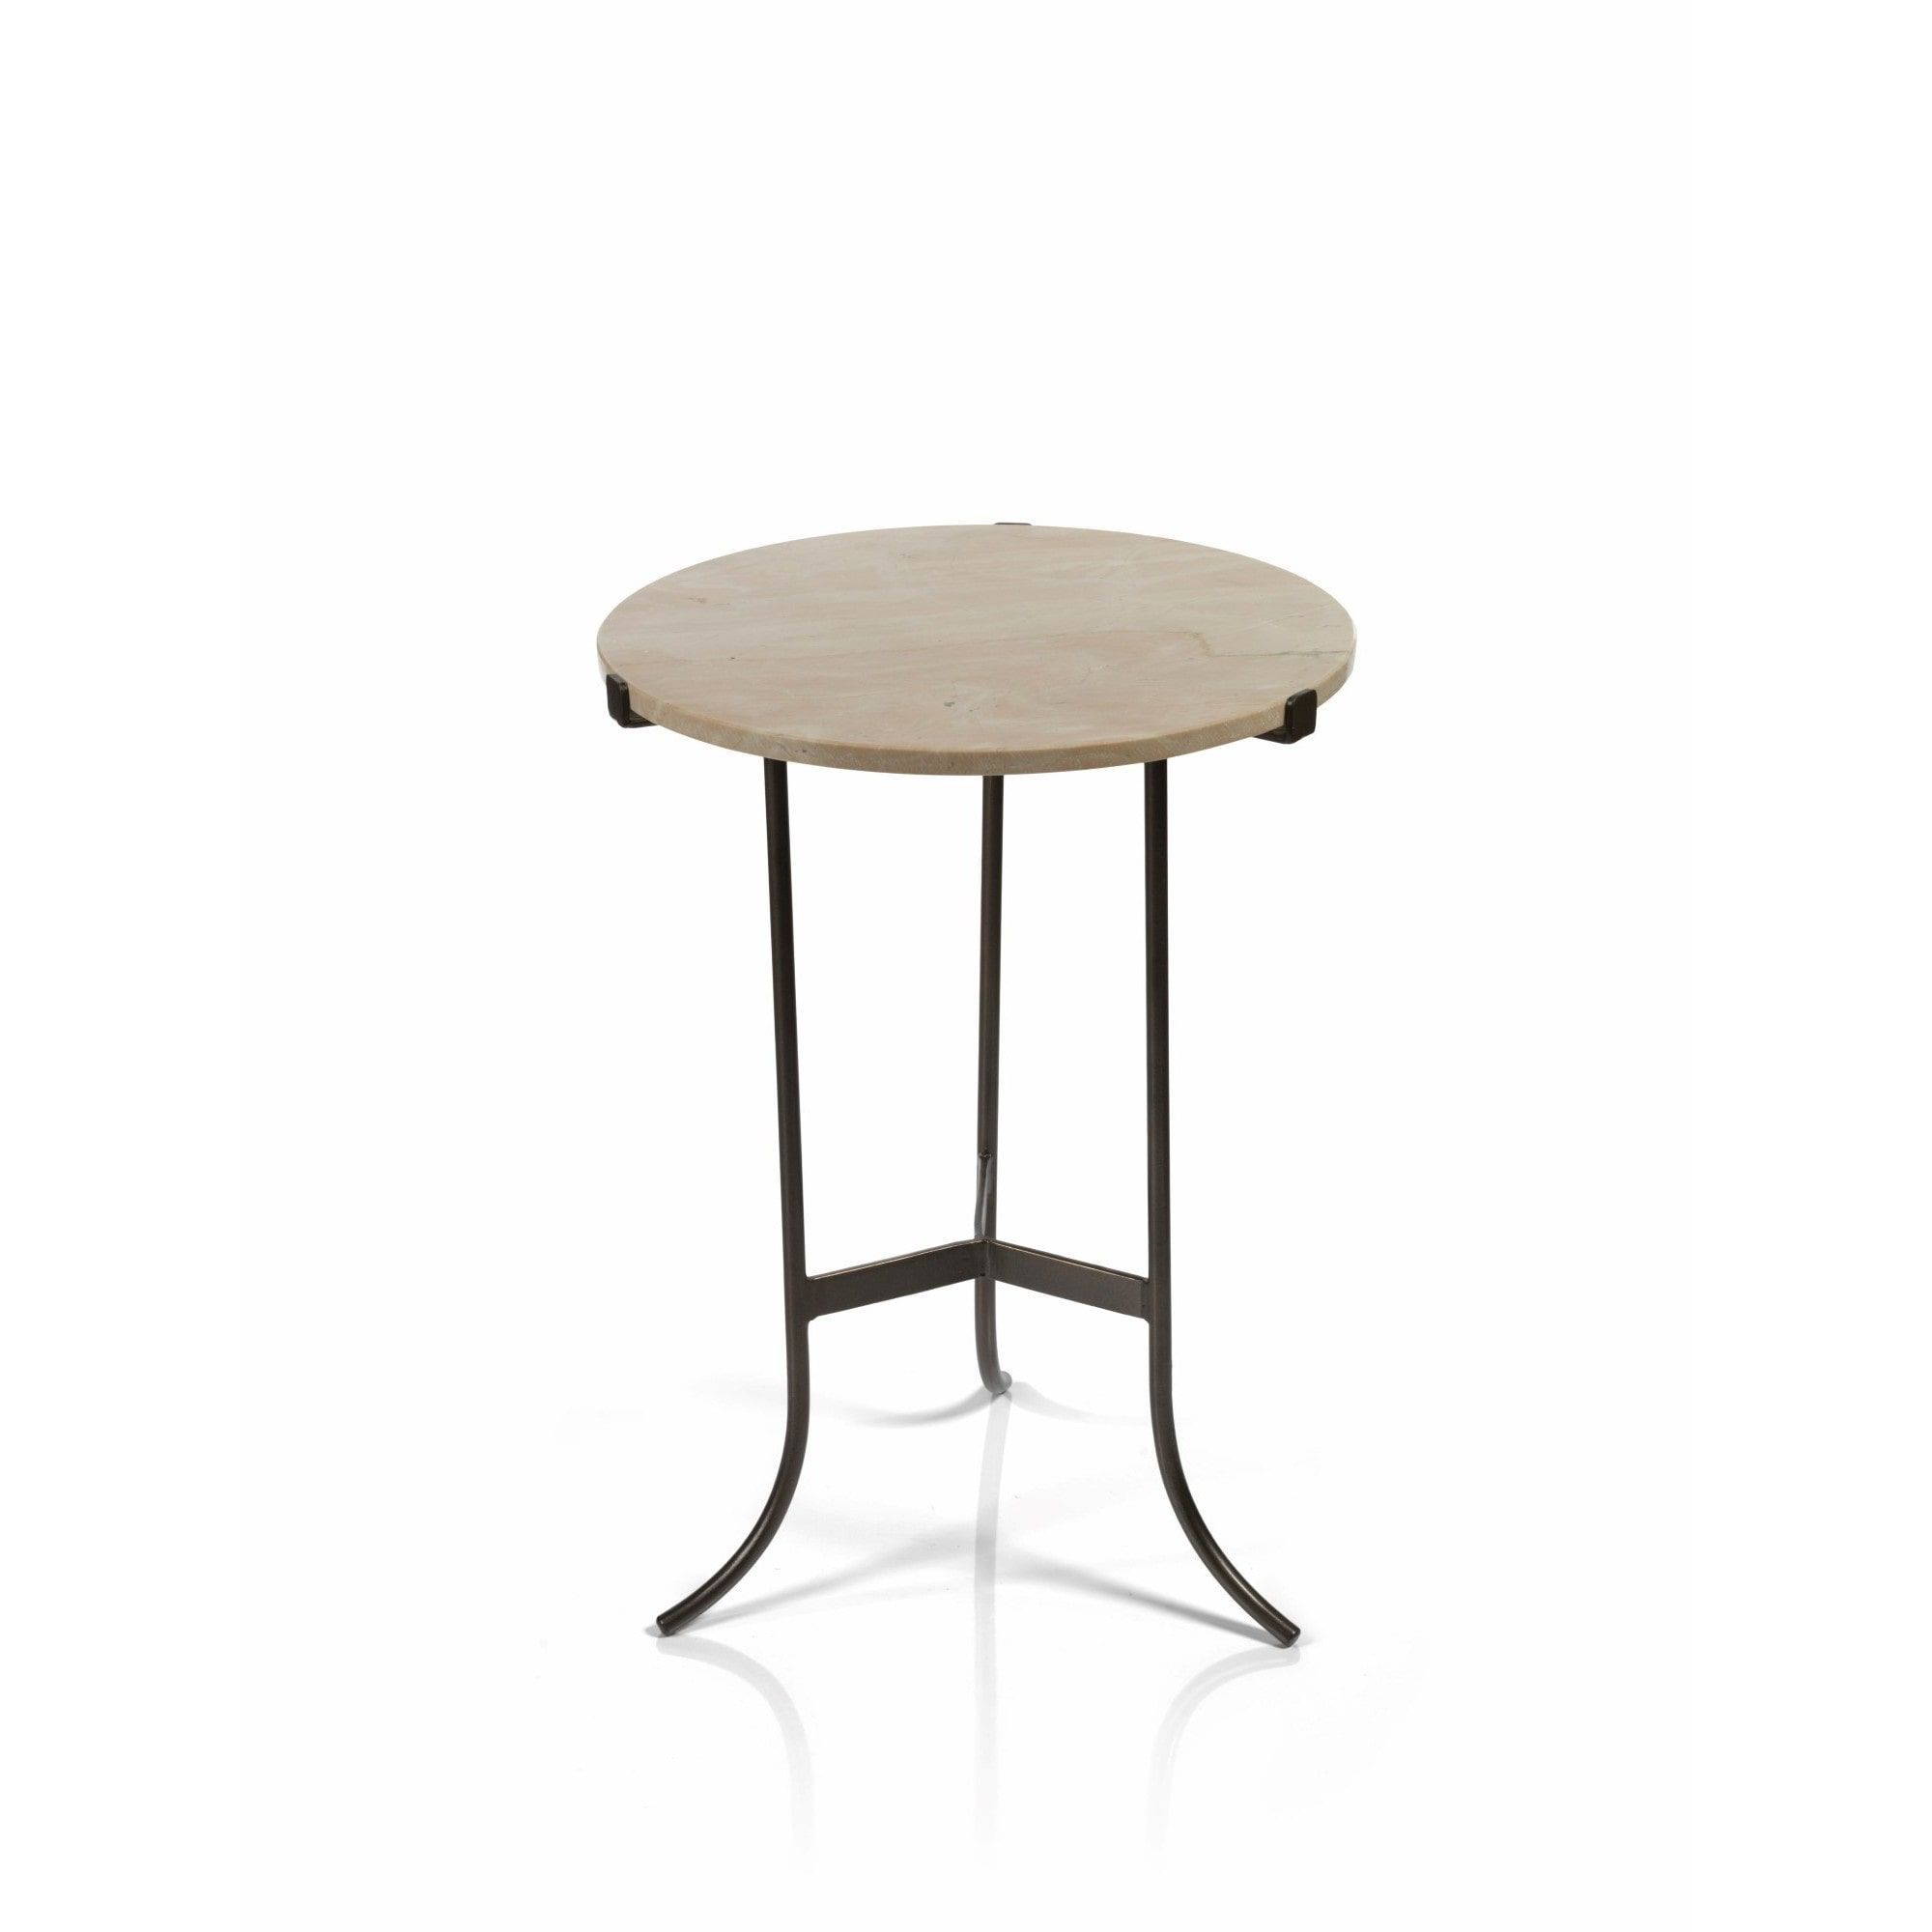 Zodax 22 Inch High Mimouna Marble Top Side Table